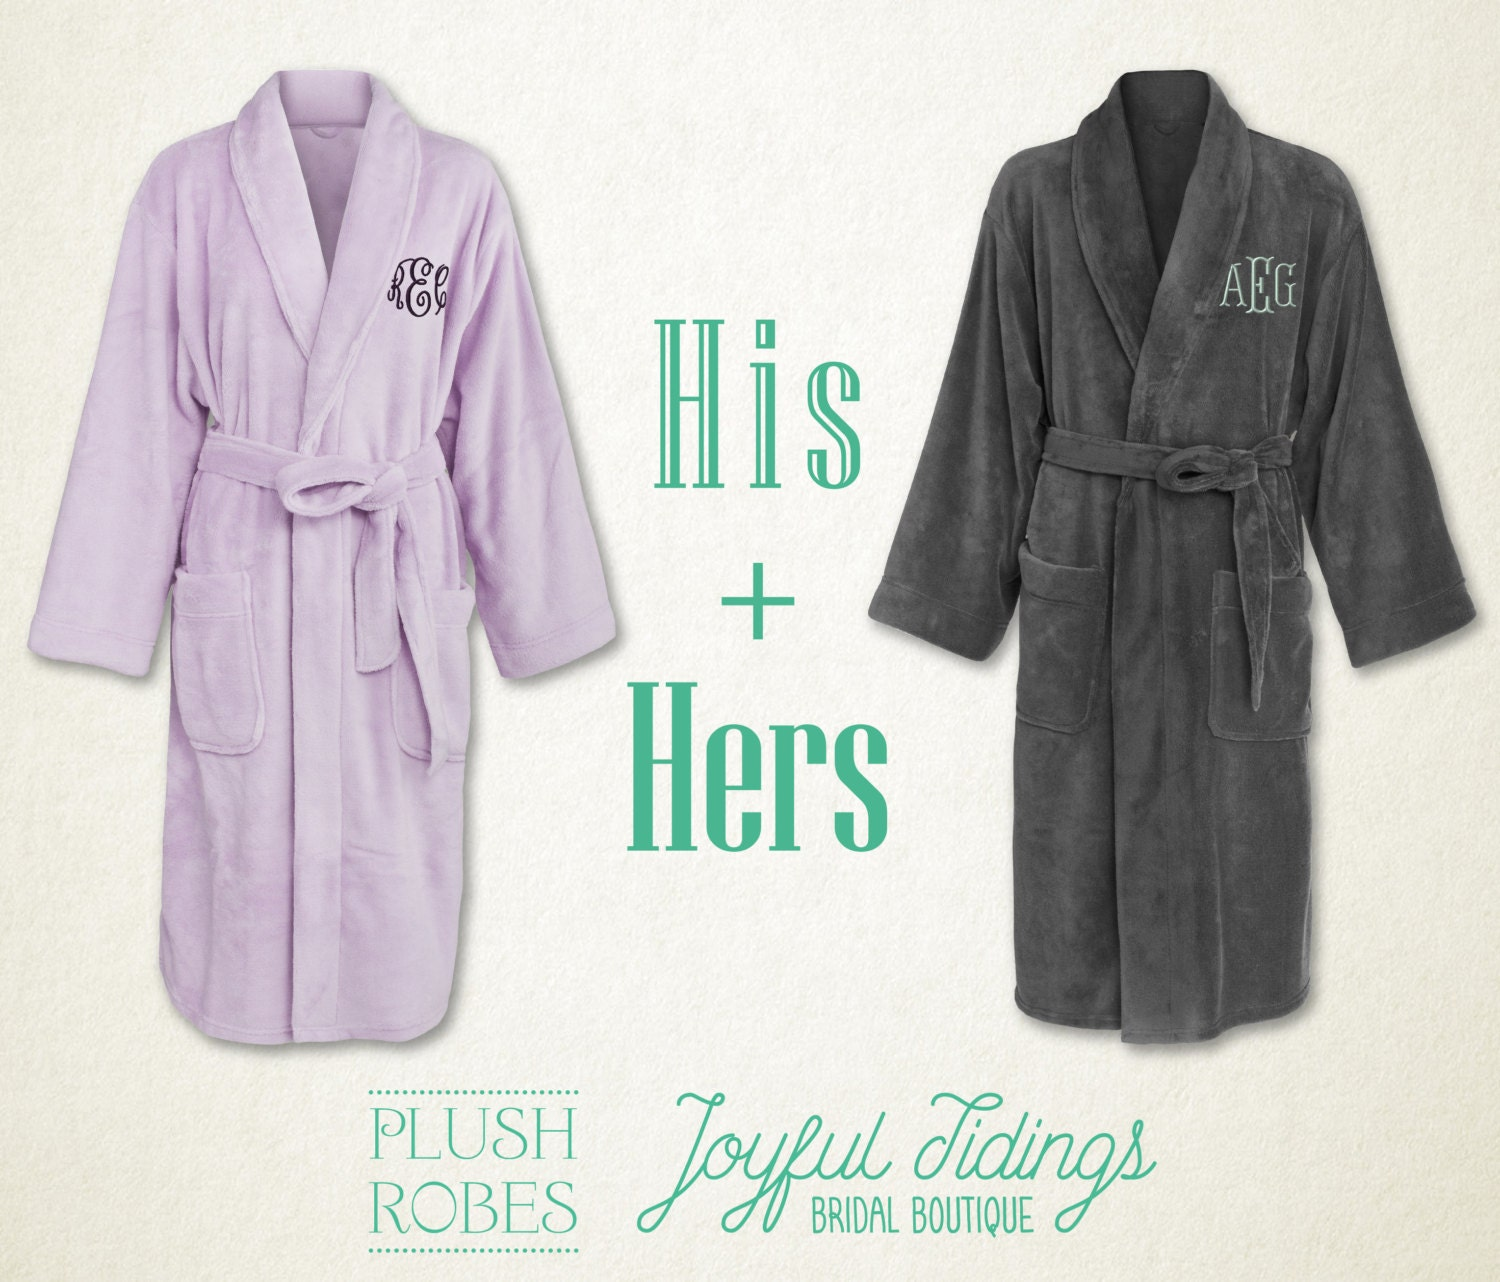 his and hers personalized fleece robe set couples gift gift. Black Bedroom Furniture Sets. Home Design Ideas